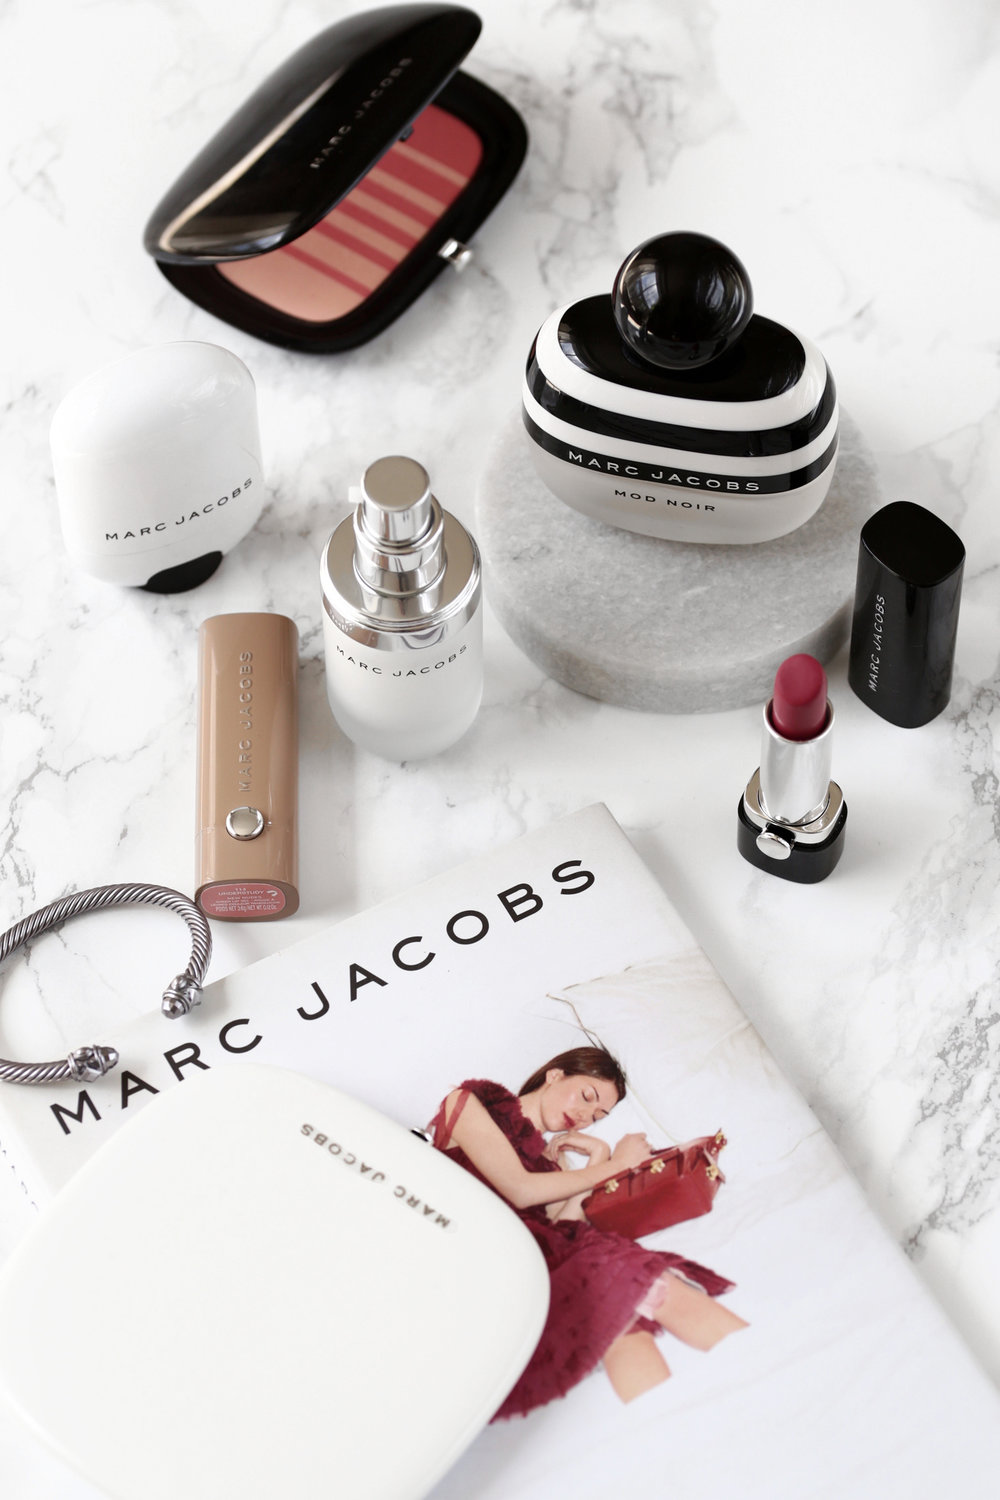 marc jacobs beauty coconut primer, highlight, limited edition bronzer brush, bronzer - review_7190.jpg